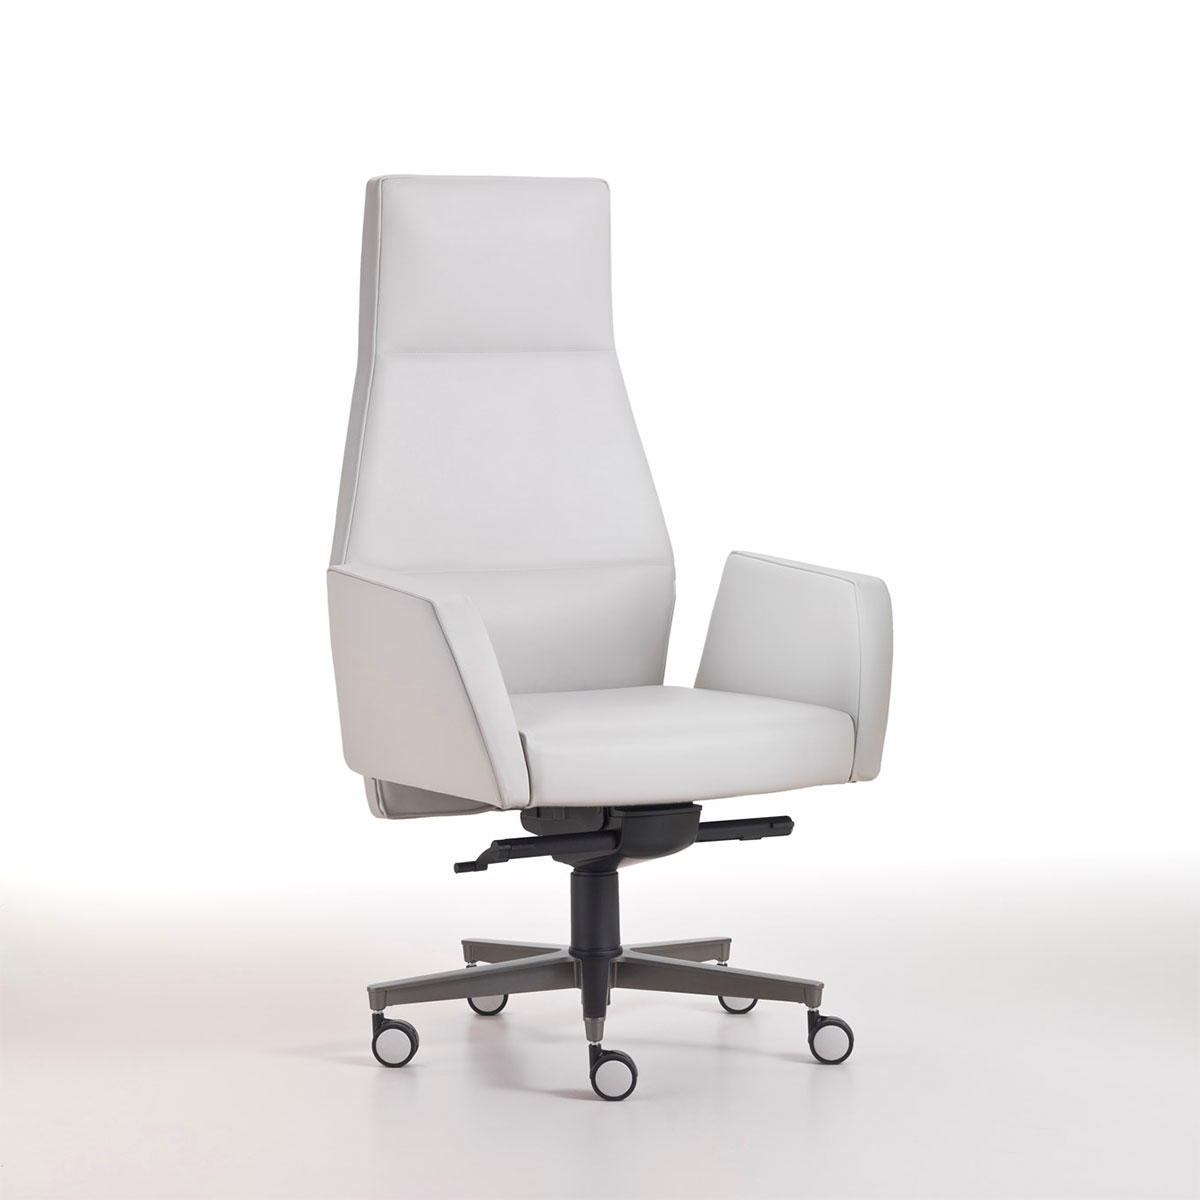 Kefa executive armchair in white leather, design Matteo Nunziati. Steel frame and polyurethane. 5-star aluminium swivel base. Free delivery. Online shopping